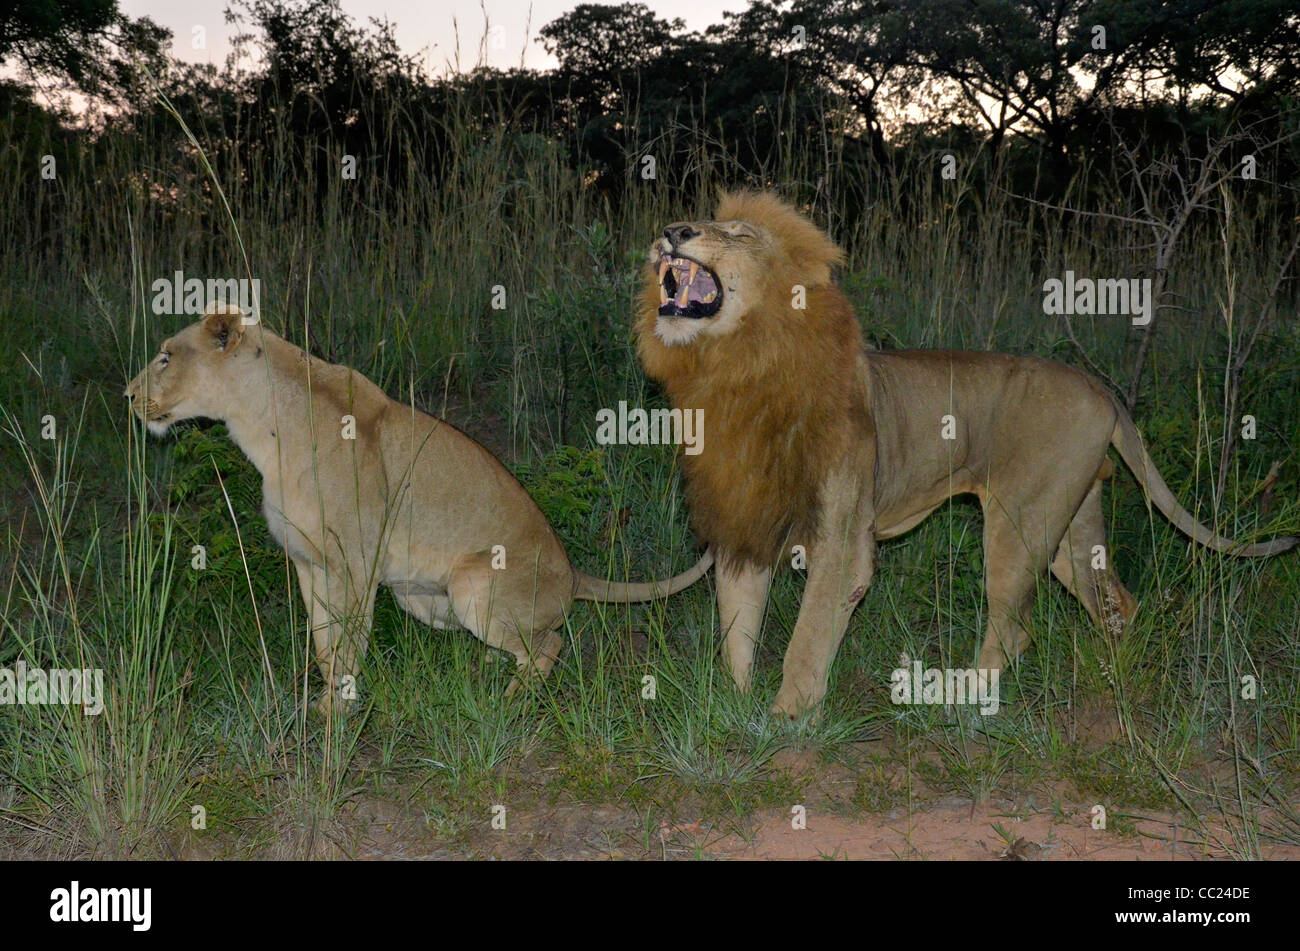 Kruger national Park is famous for game viewing. Mating lions at dawn. Female urinates, male shows Flehmen's - Stock Image